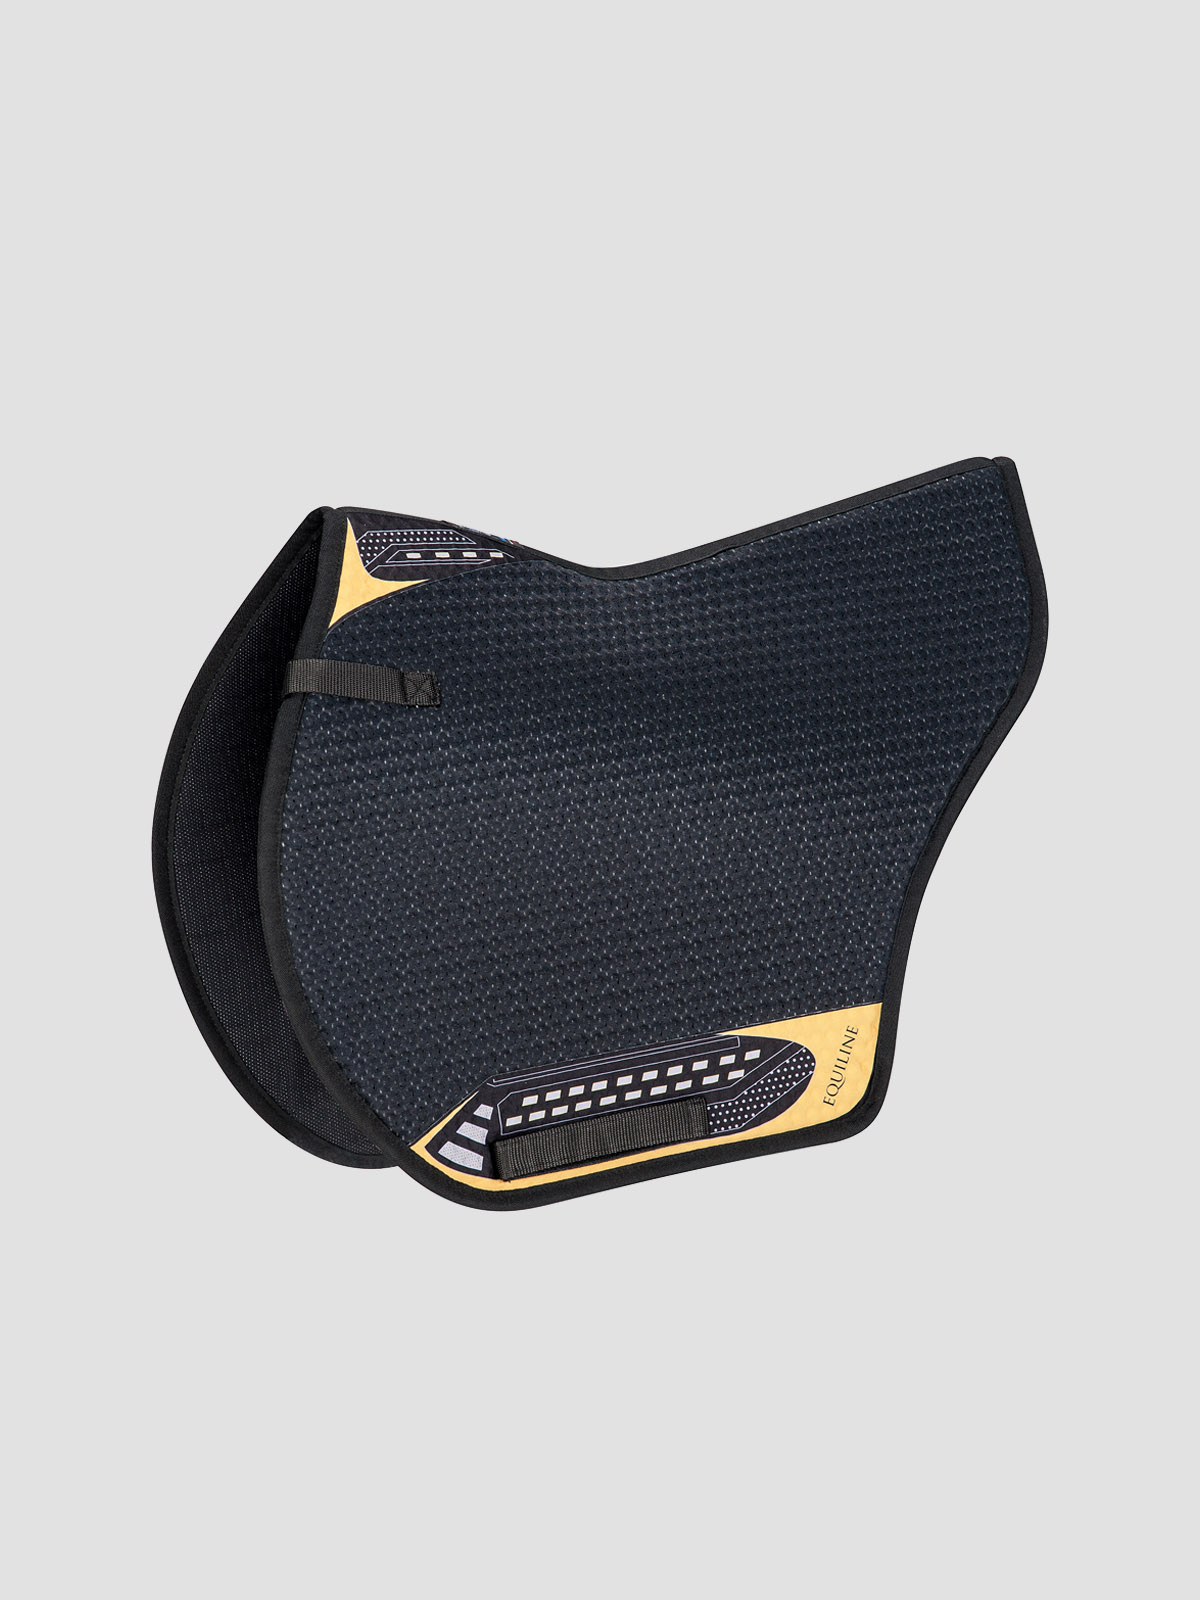 Equiline Norton techno air saddle pad in black